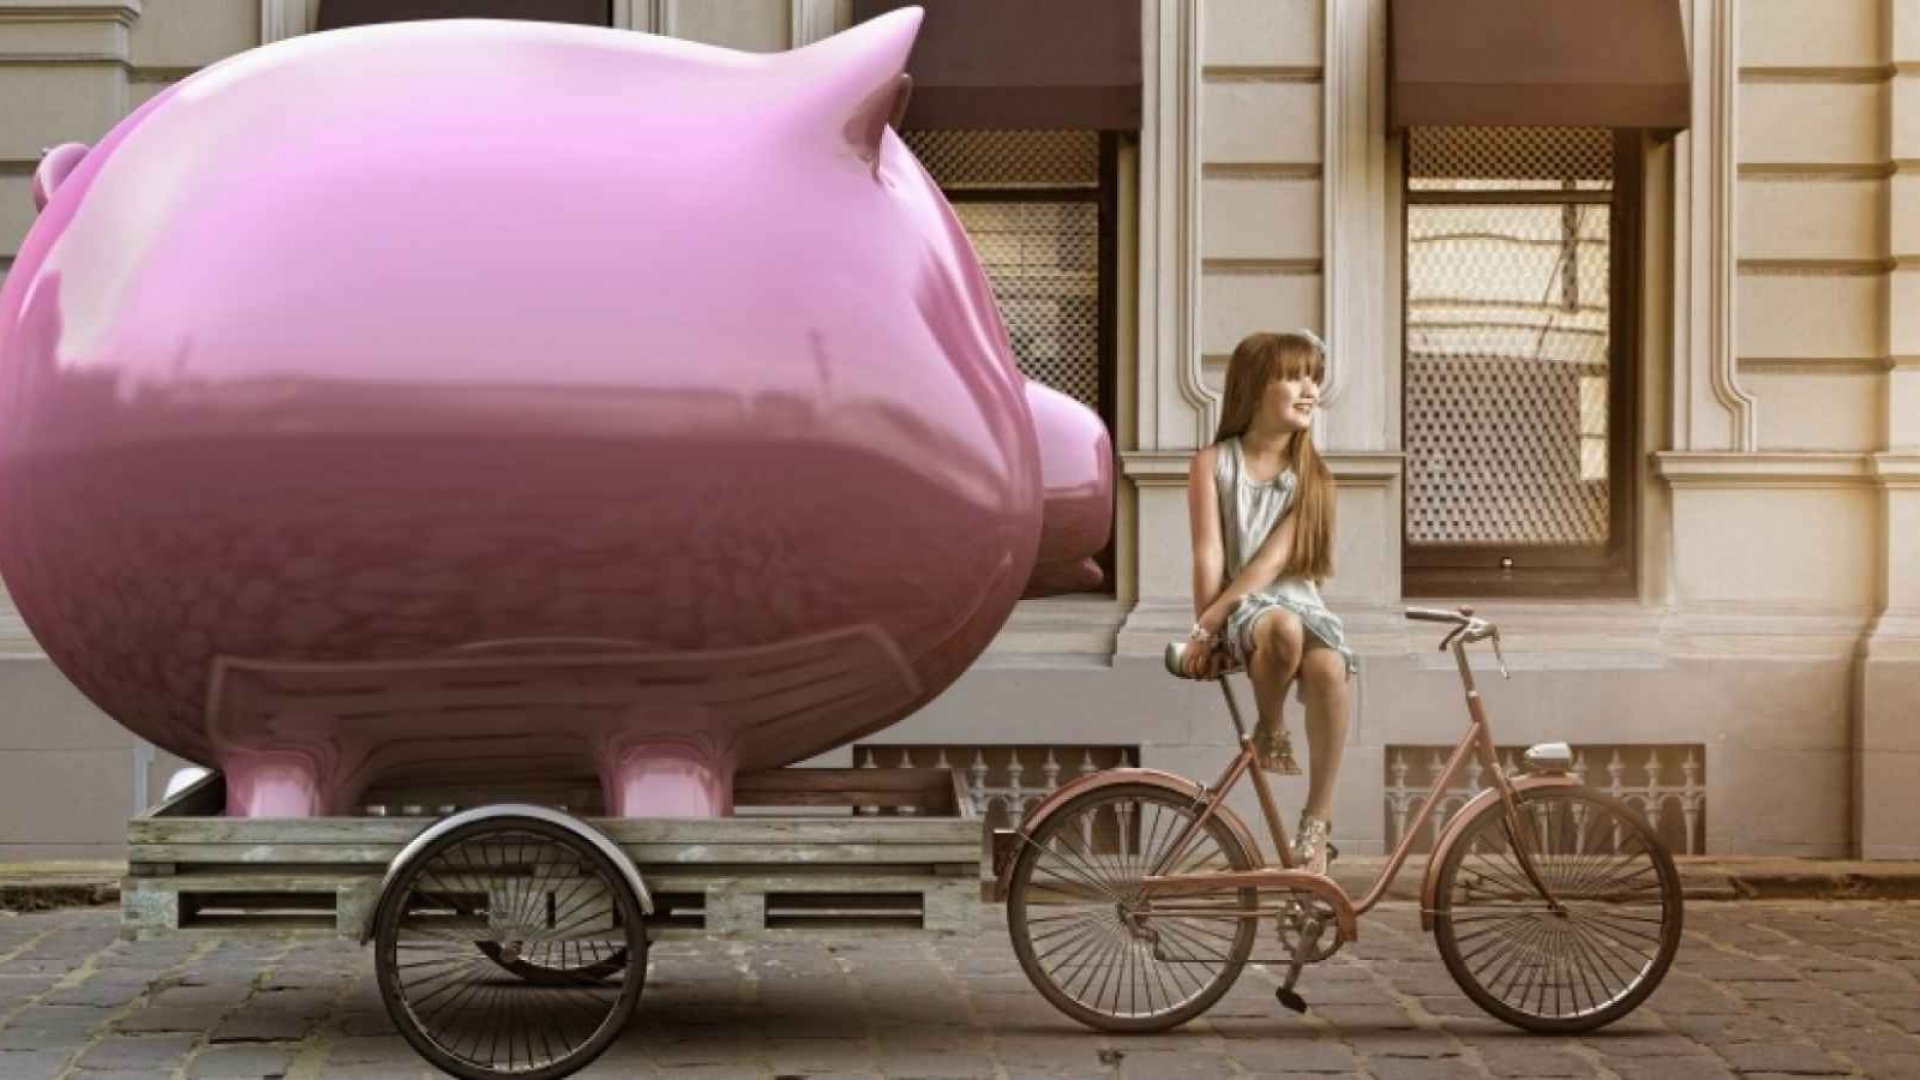 5 Reasons You'll Never Be a Millionaire (and How to Fix That)